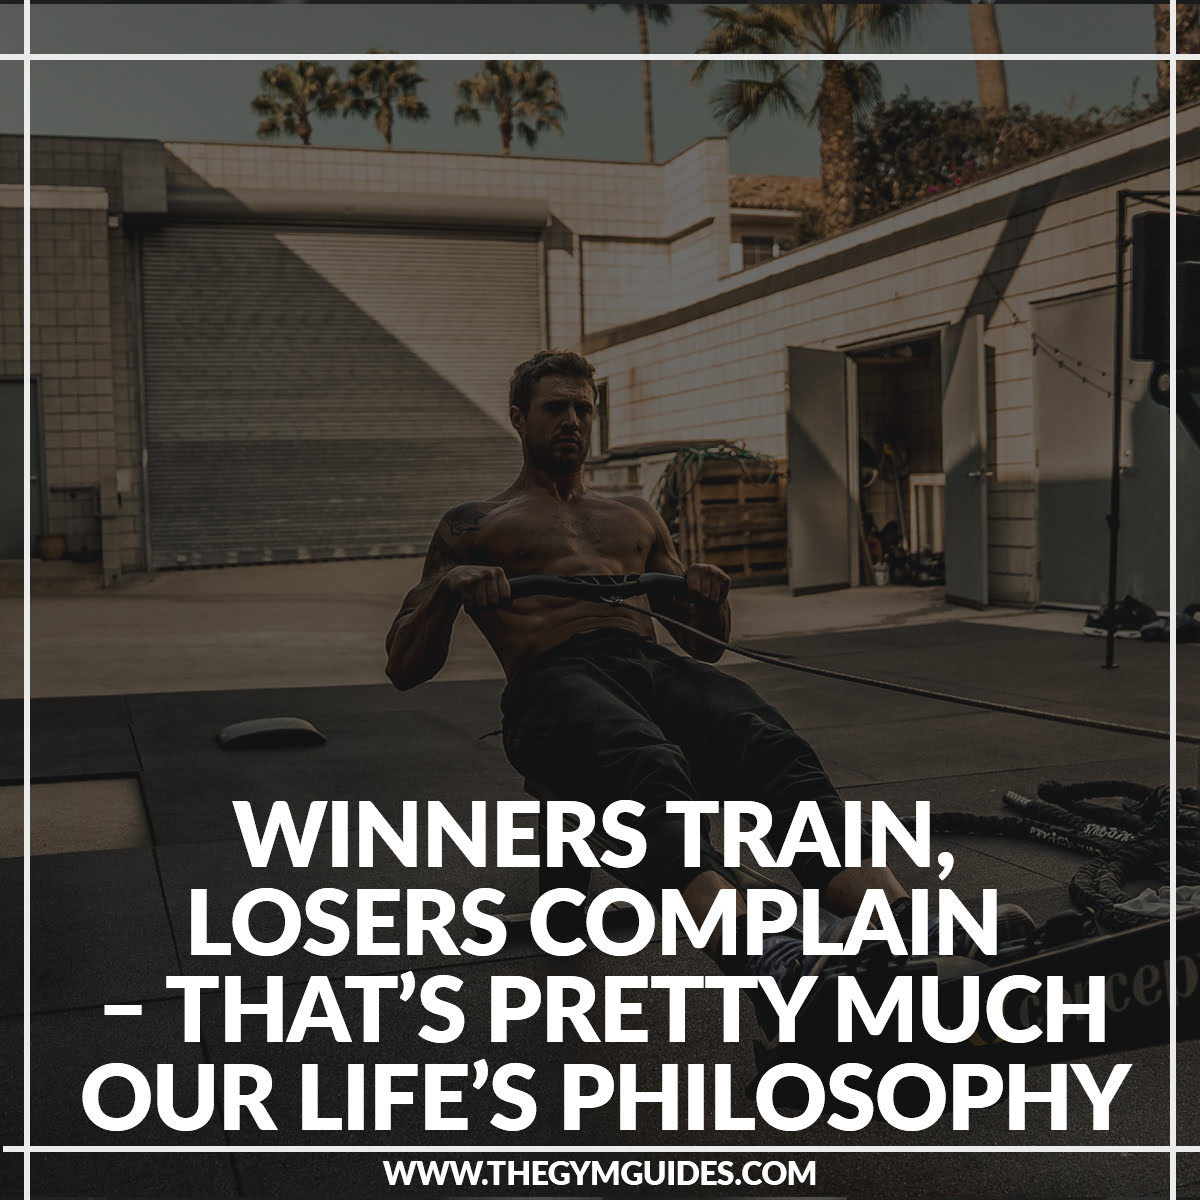 Winners Train, Losers Complain – that's pretty much our life's philosophy